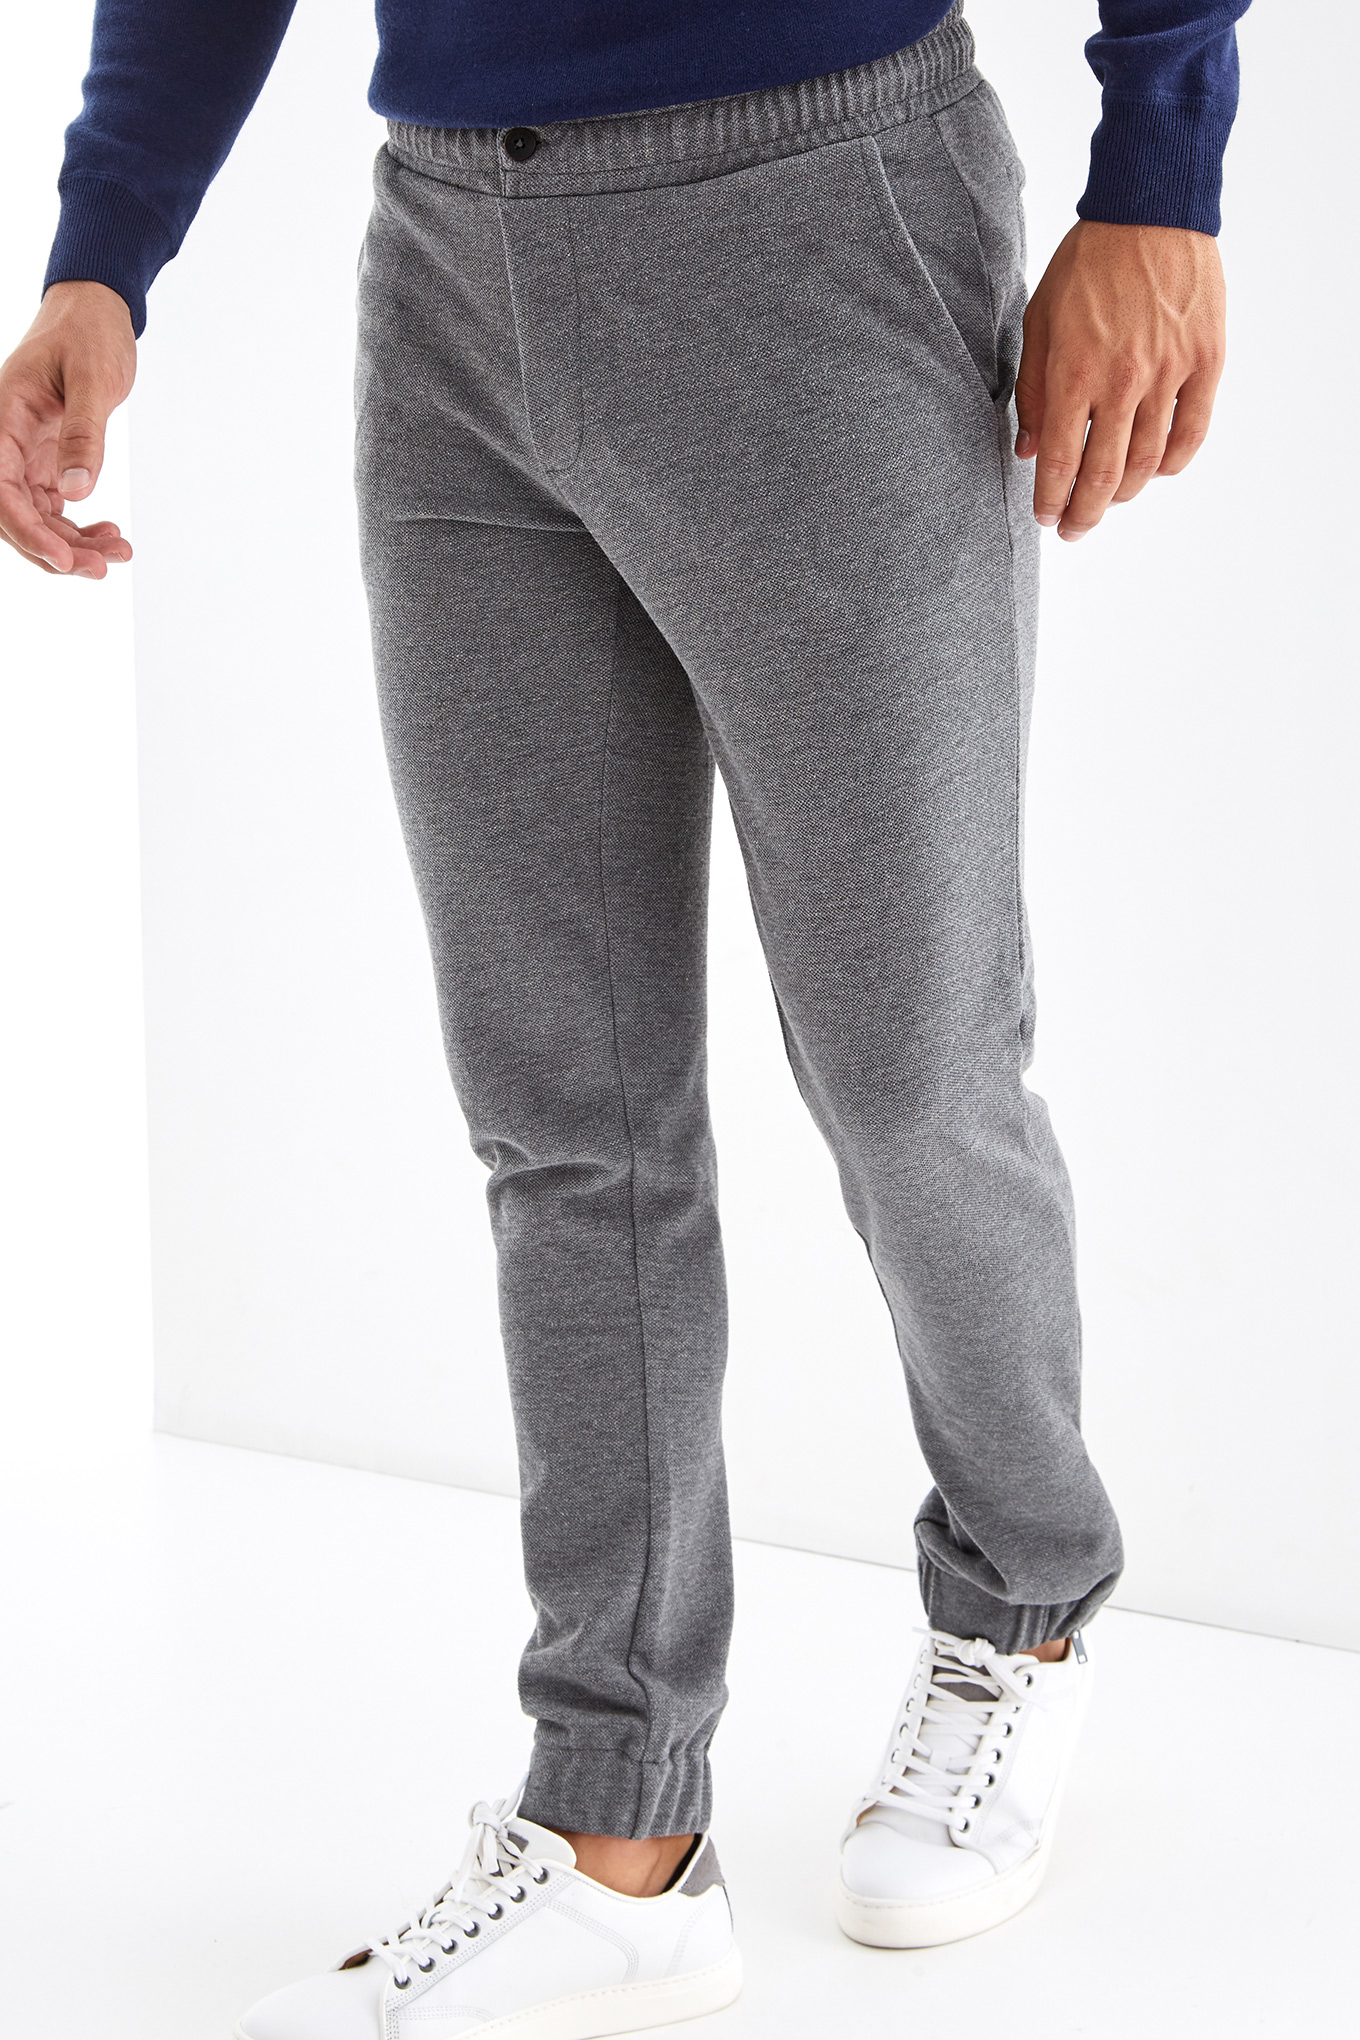 Sportswear Trousers Mix Grey Sport Man